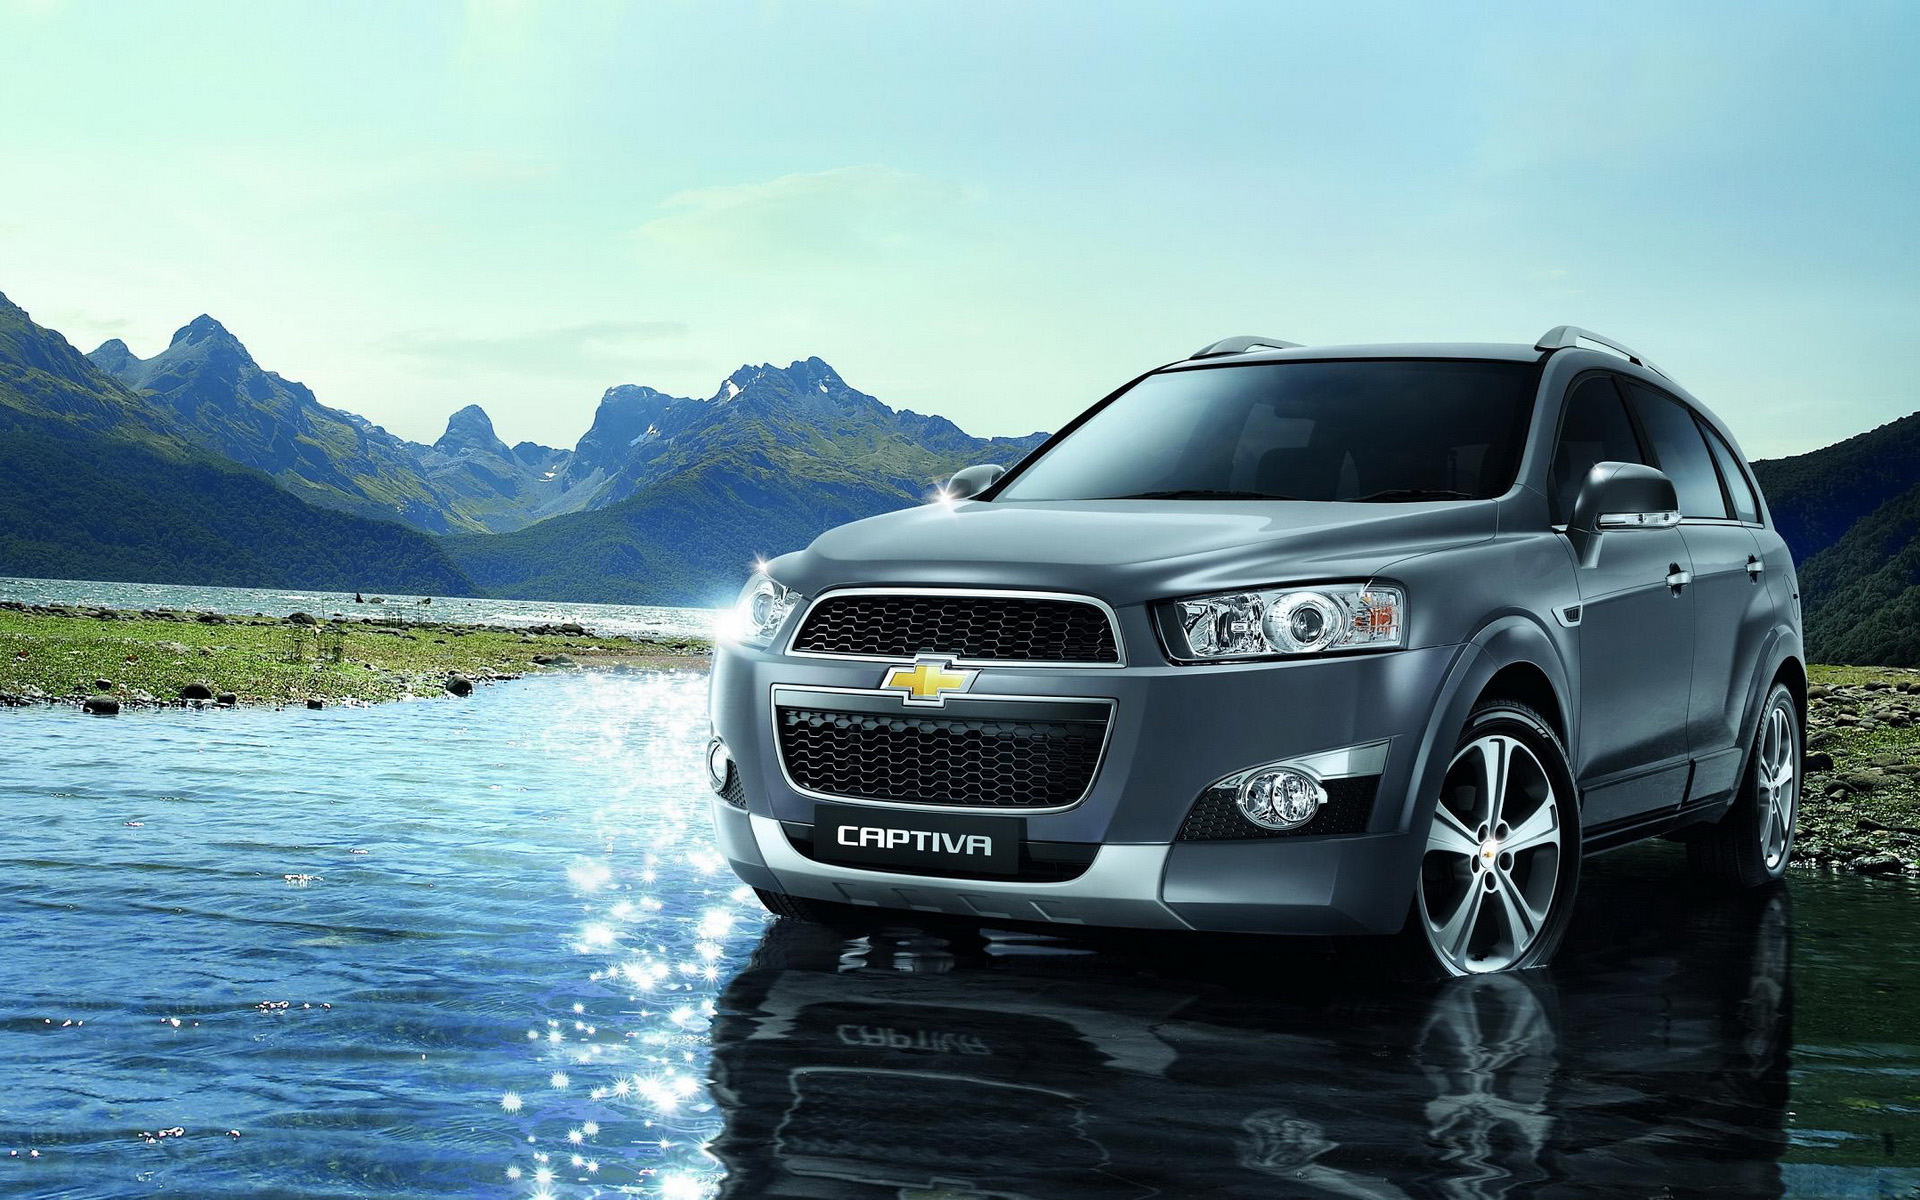 Chevrolet Camaro Captiva Wallpaper